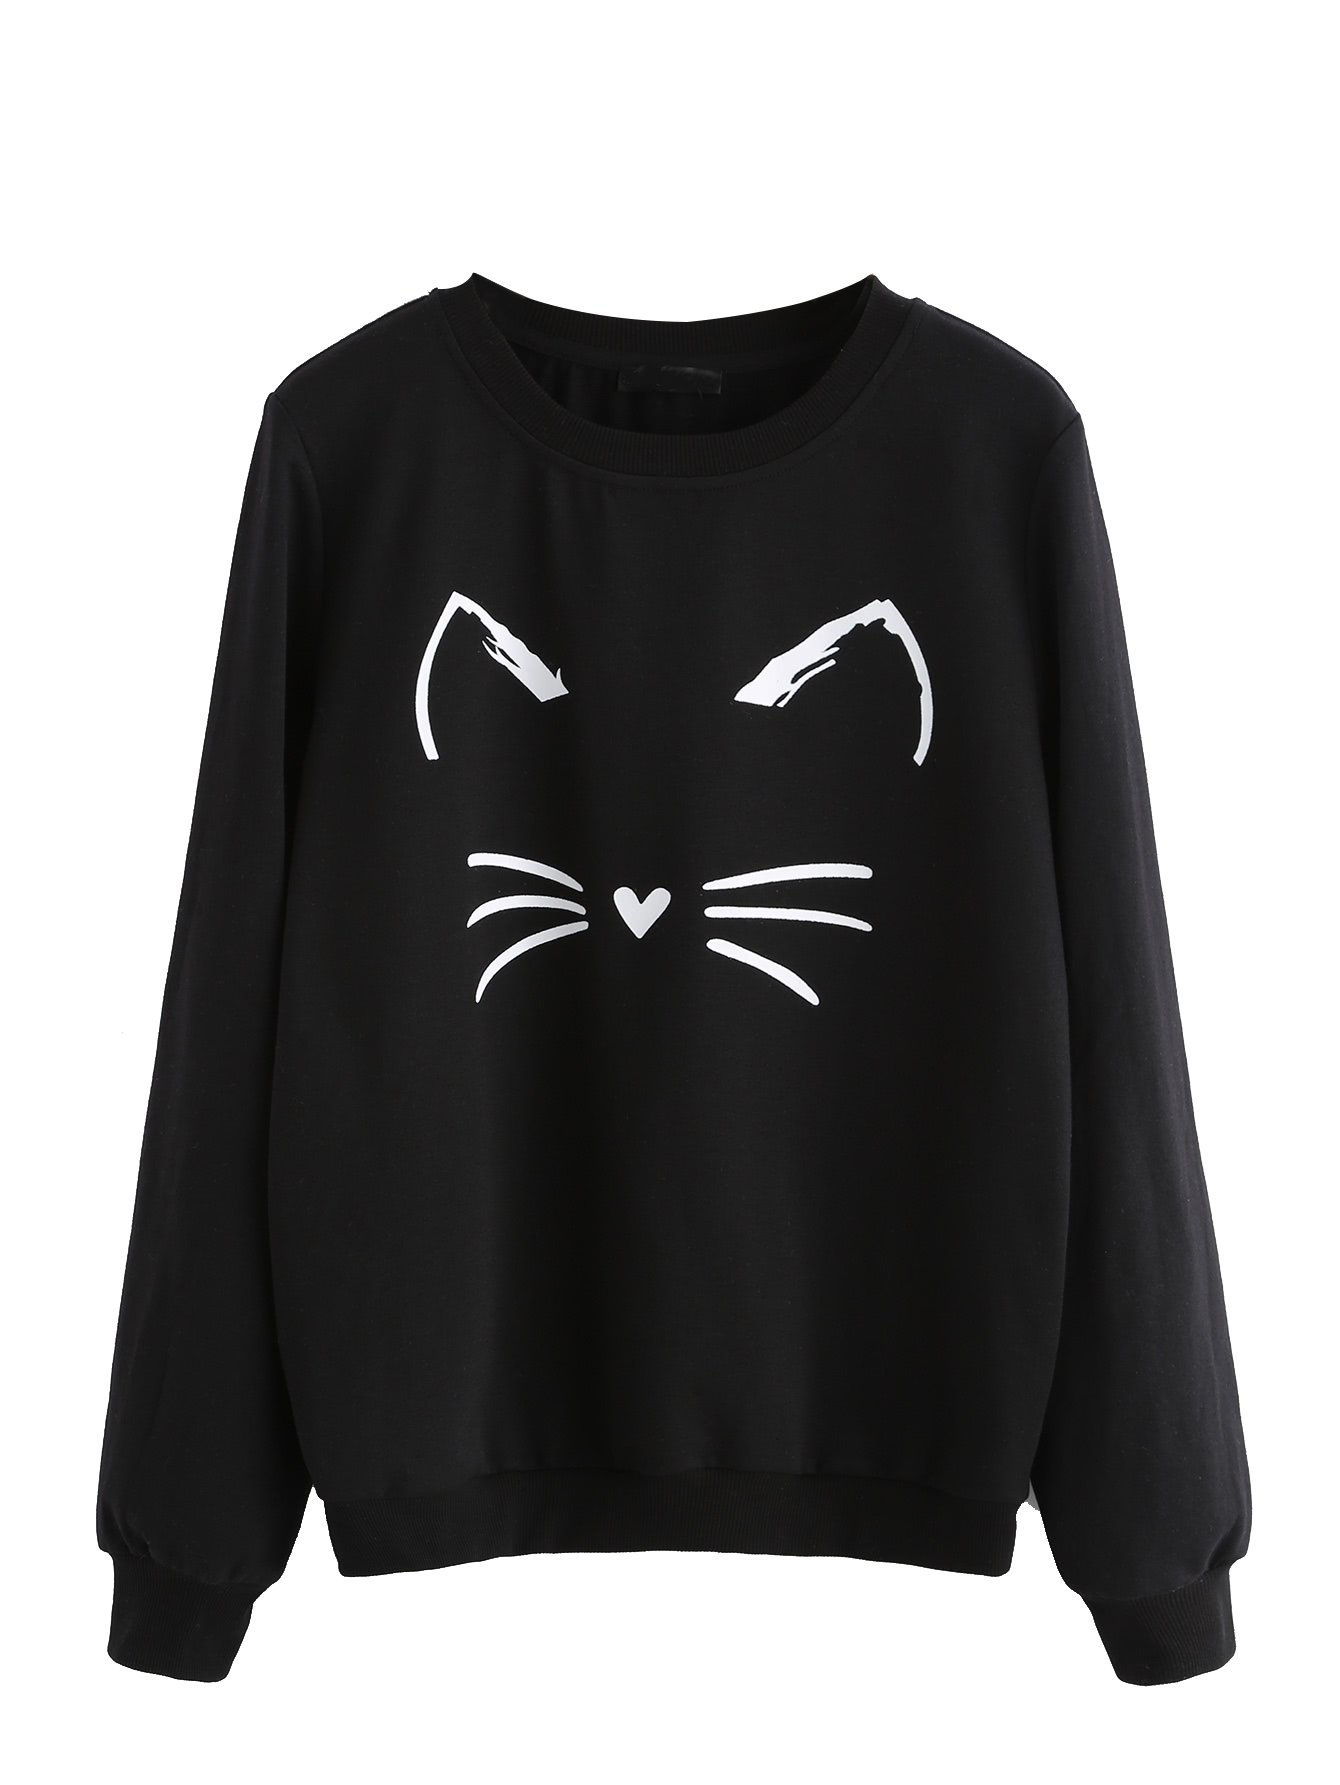 ROMWE Women's Cat Print Sweatshirt Long Sleeve Loose Pullover Shirt Black L